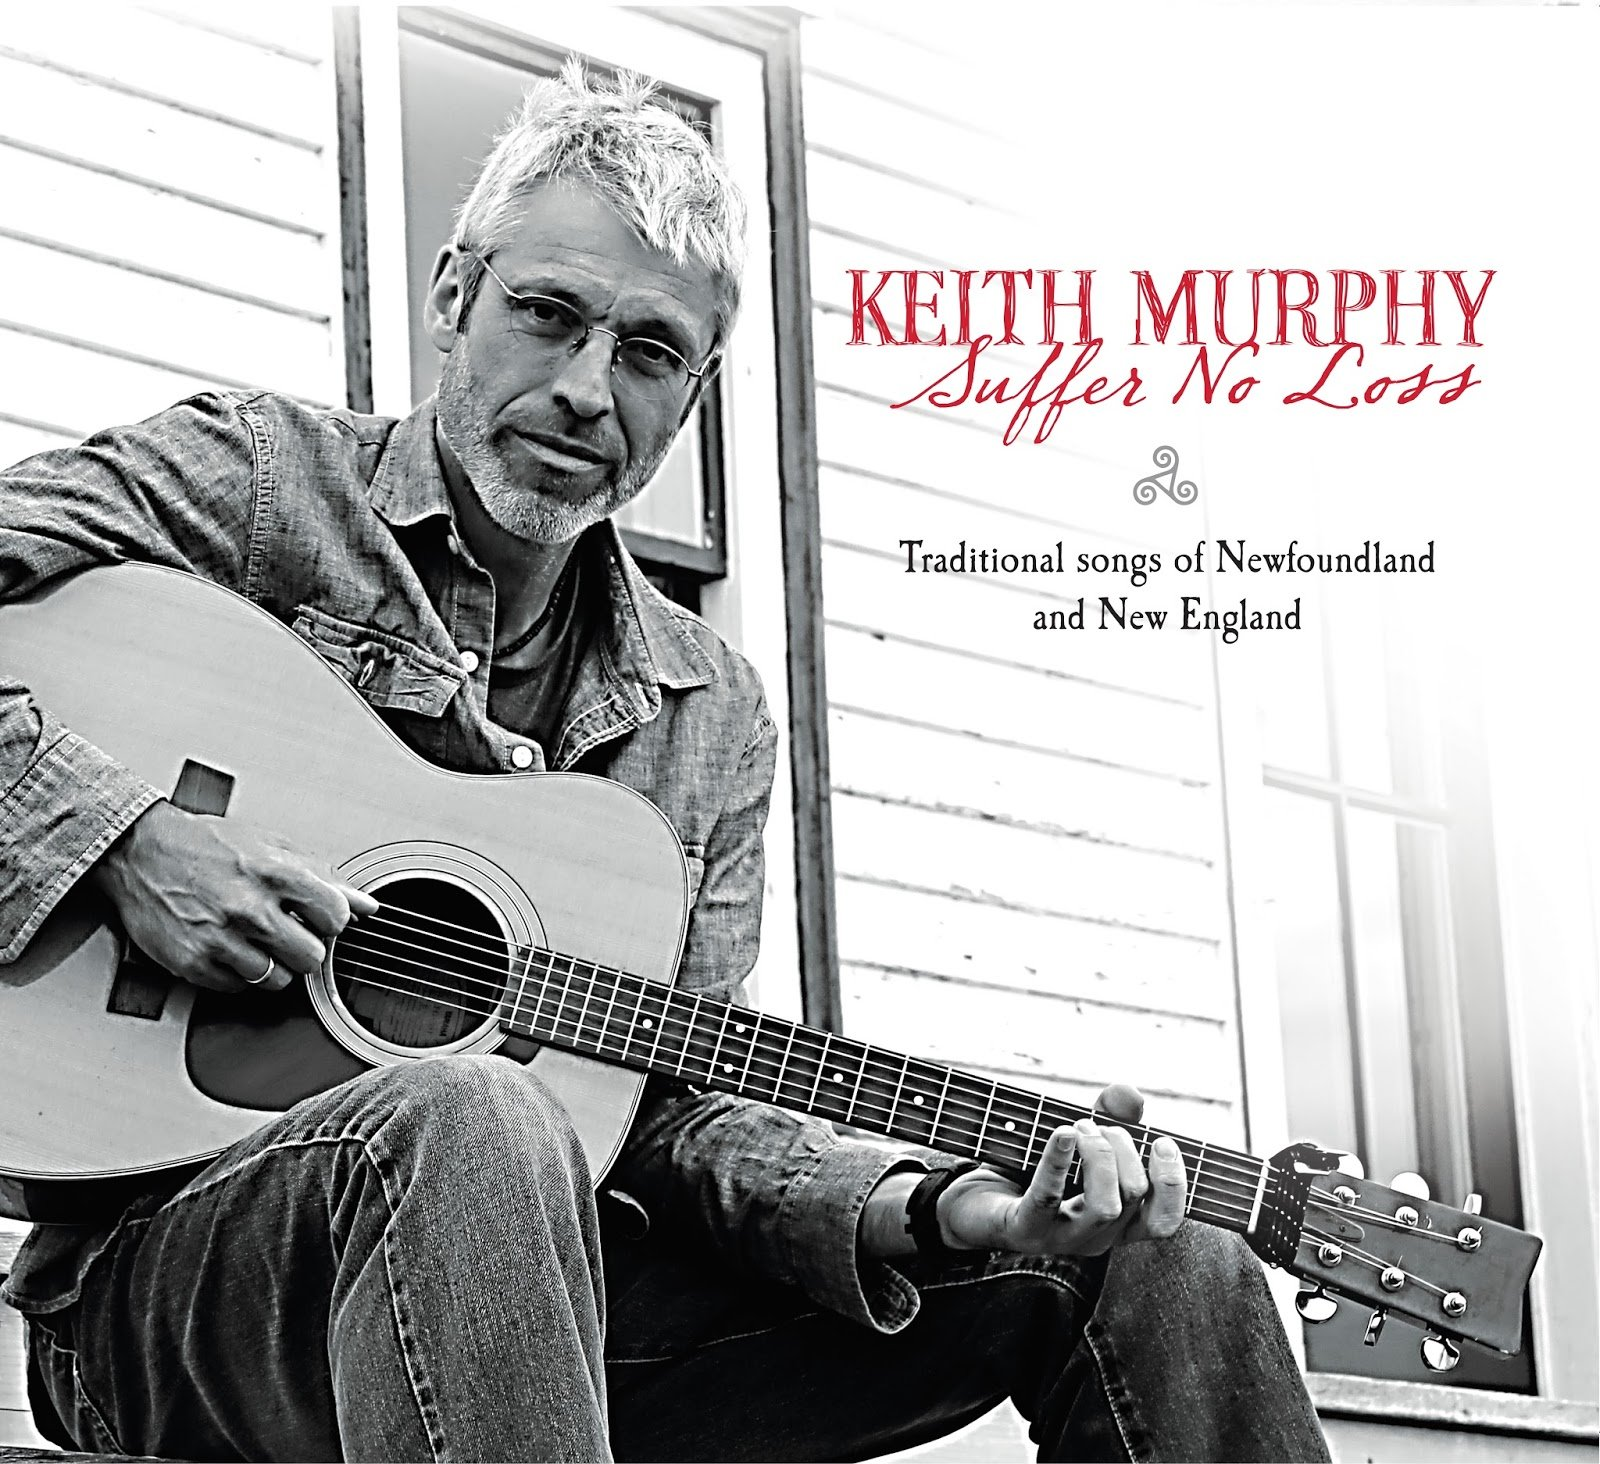 Keith Murphy, an evening of traditional songs from Newfoundland and New England